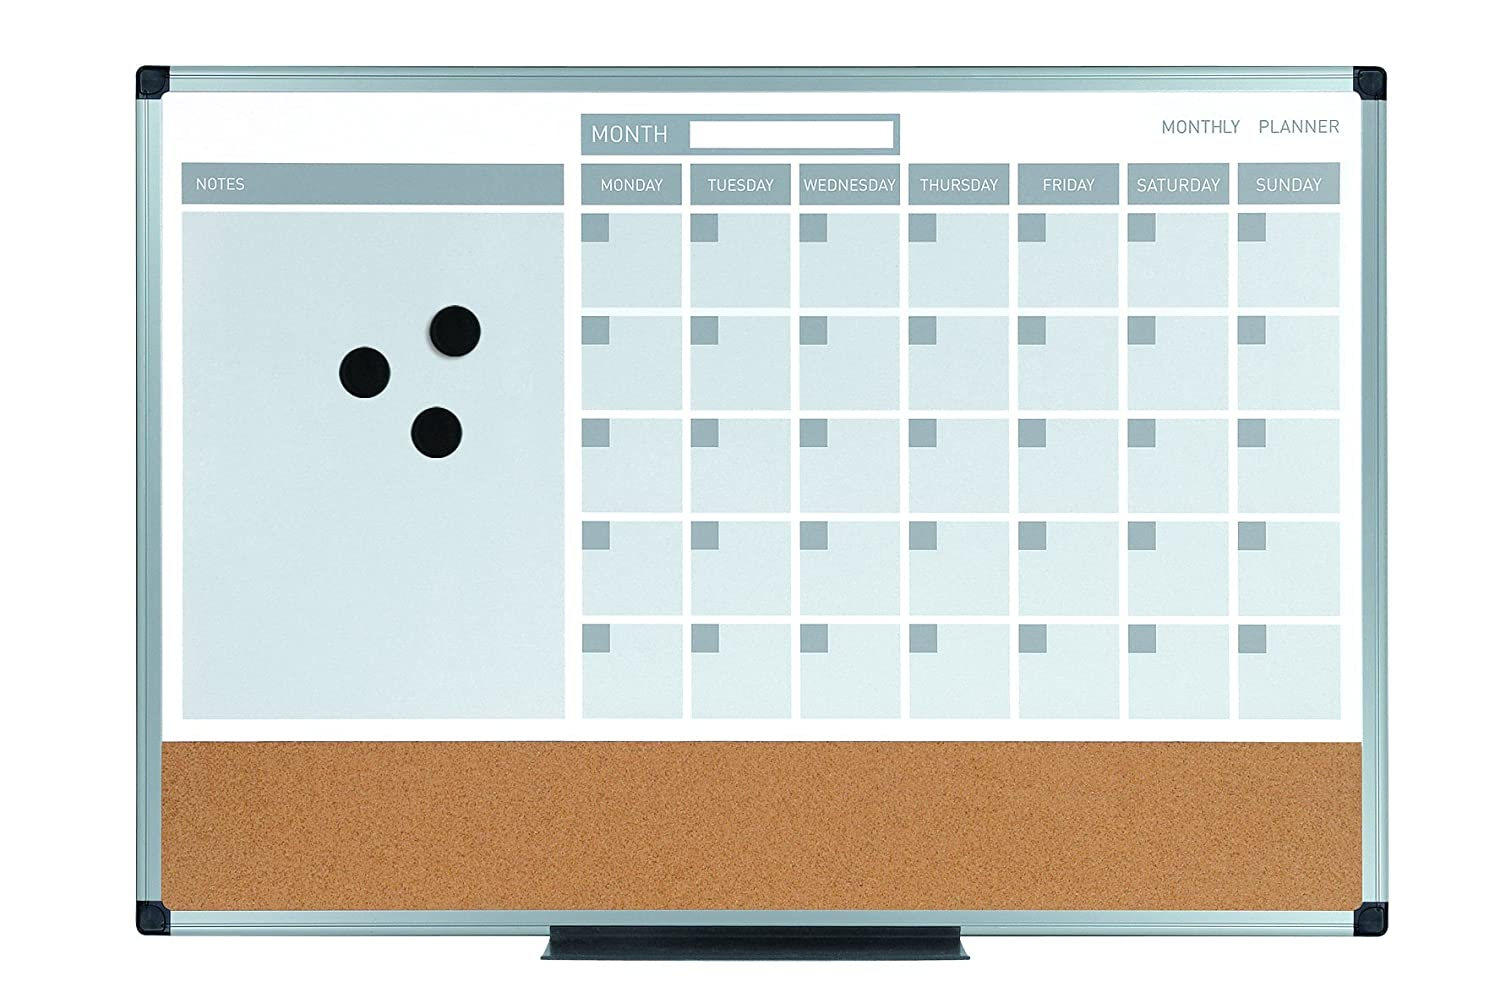 Amazoncom Mastervision Mb0707186p Planning Board 3 In 1 Calendar